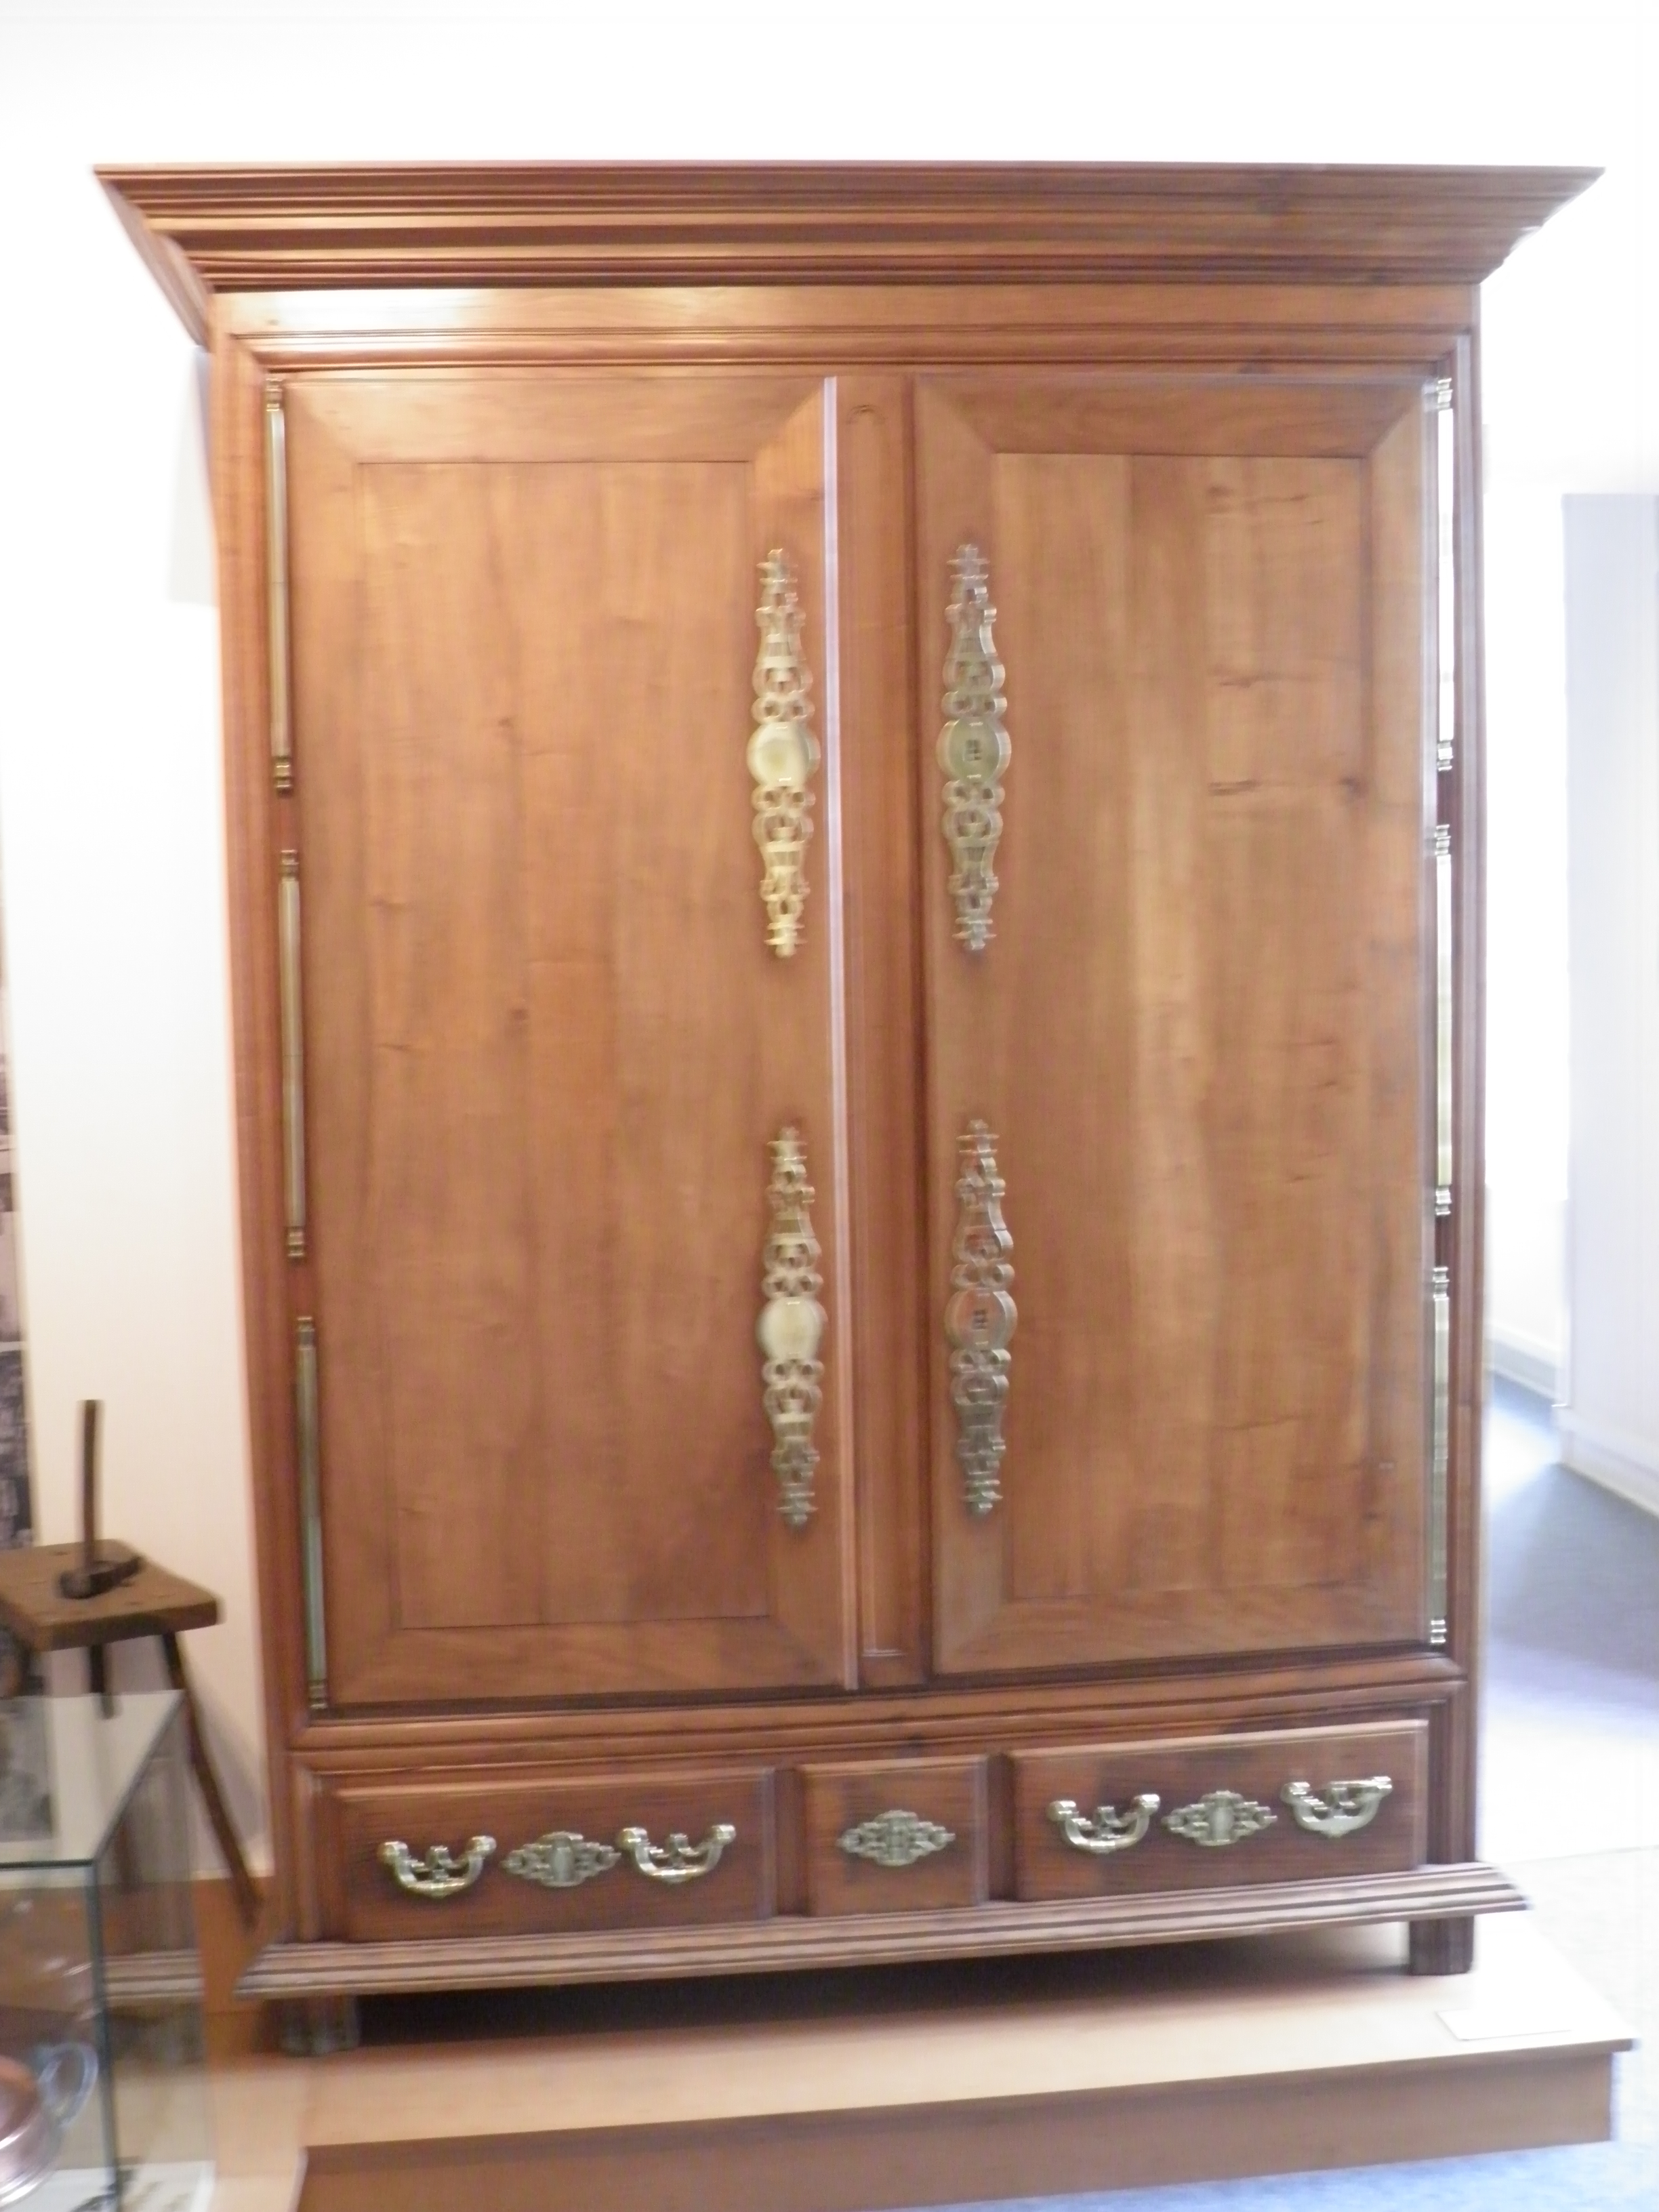 armoire wiki 28 images fichier armoire artdeco jpg wikip 233 dia armoire wikip 233 dia. Black Bedroom Furniture Sets. Home Design Ideas